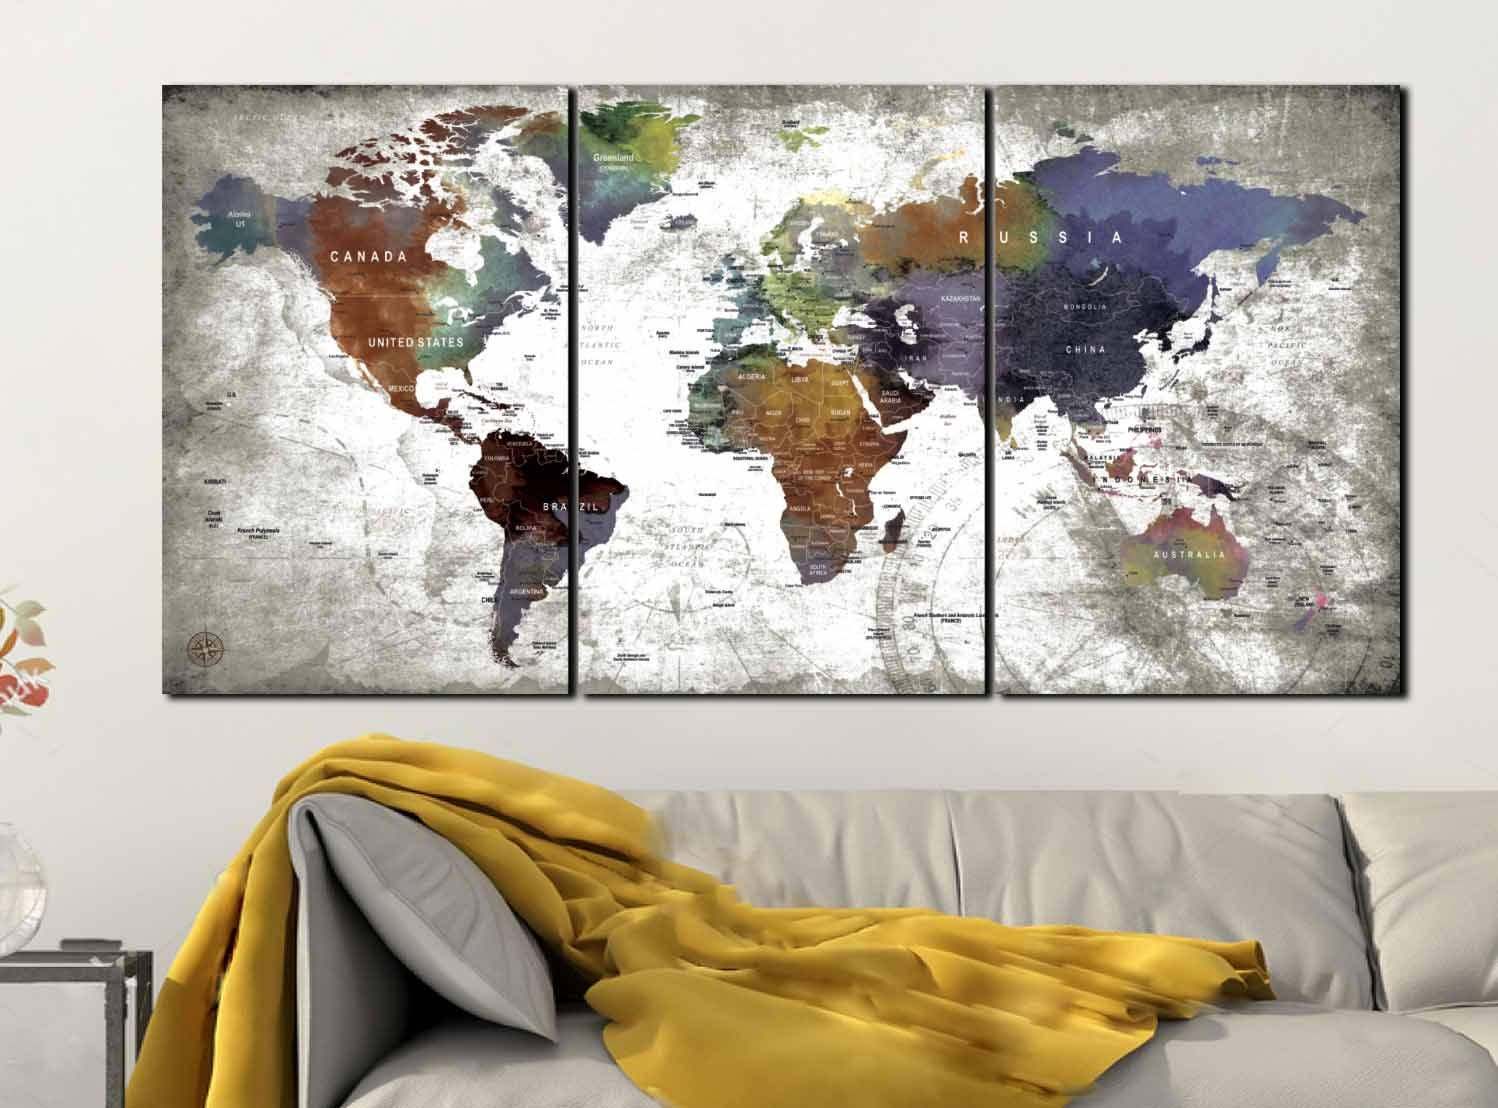 World map canvasworld map 3 panel canvas print world map canvas world map canvasworld map 3 panel canvas print world map canvas art watercolorworld map art printpush pin map canvastravel map canvas gumiabroncs